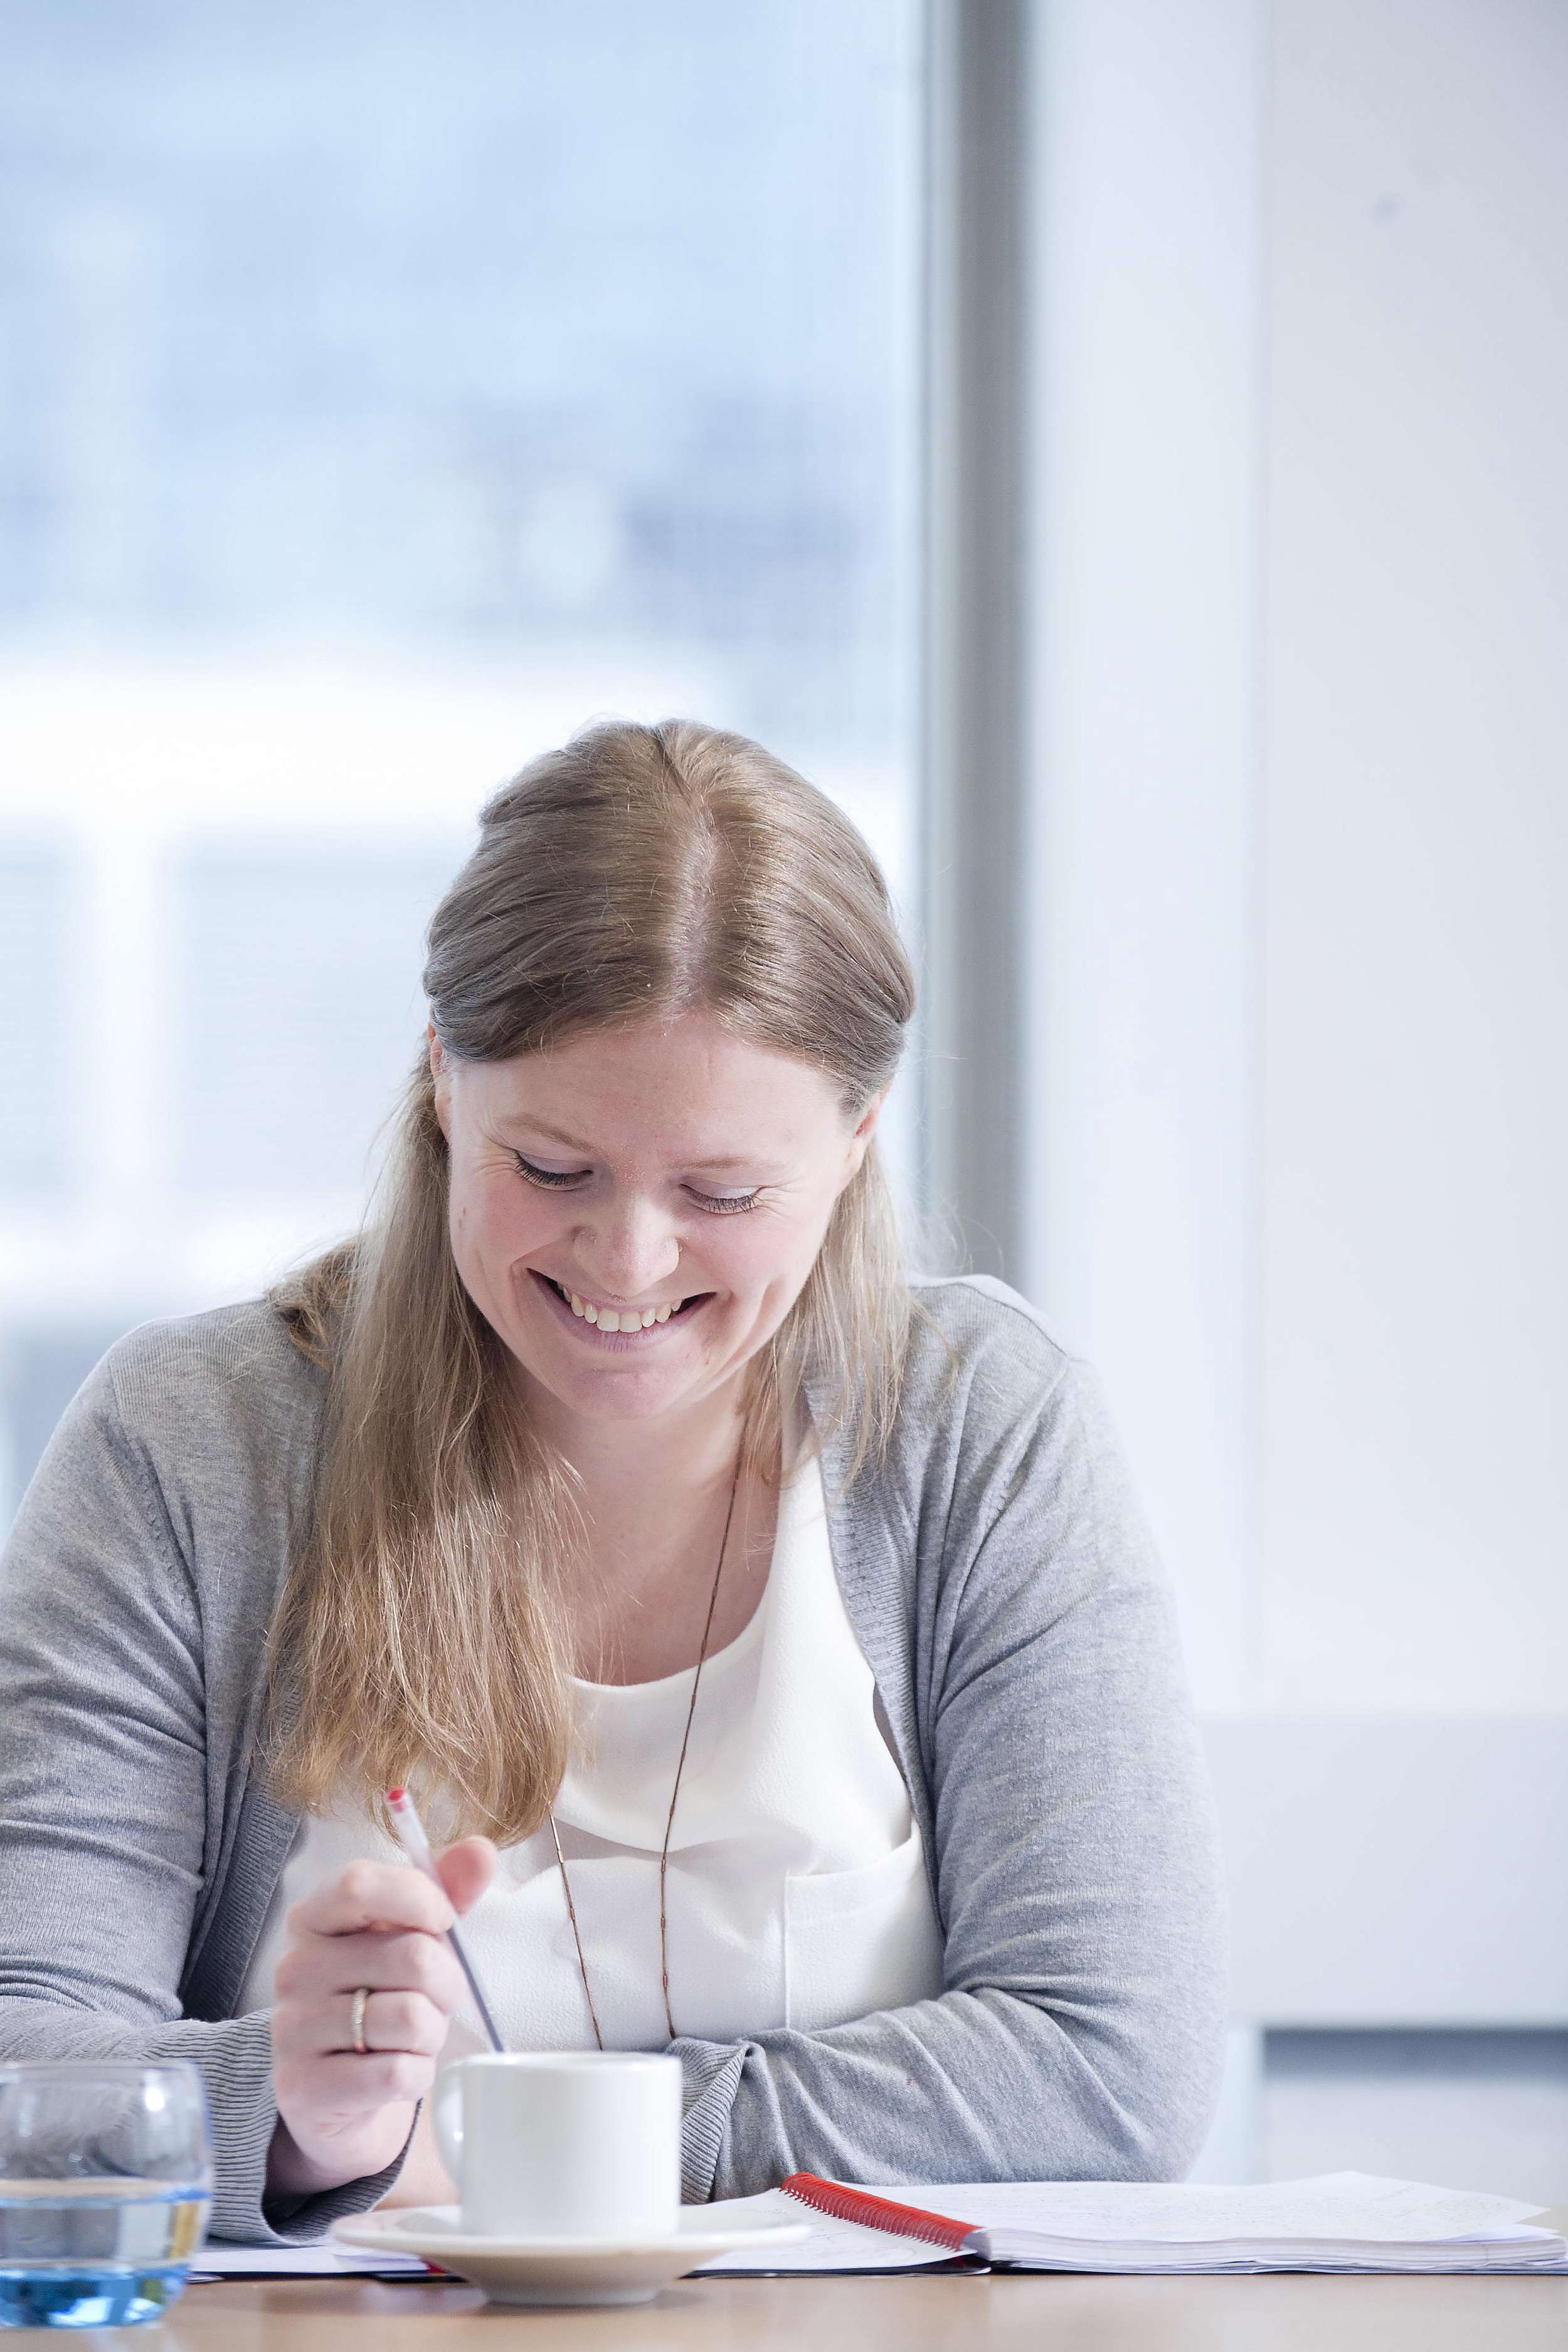 Candid Portrait of a woman laughing at meeting in an office in London